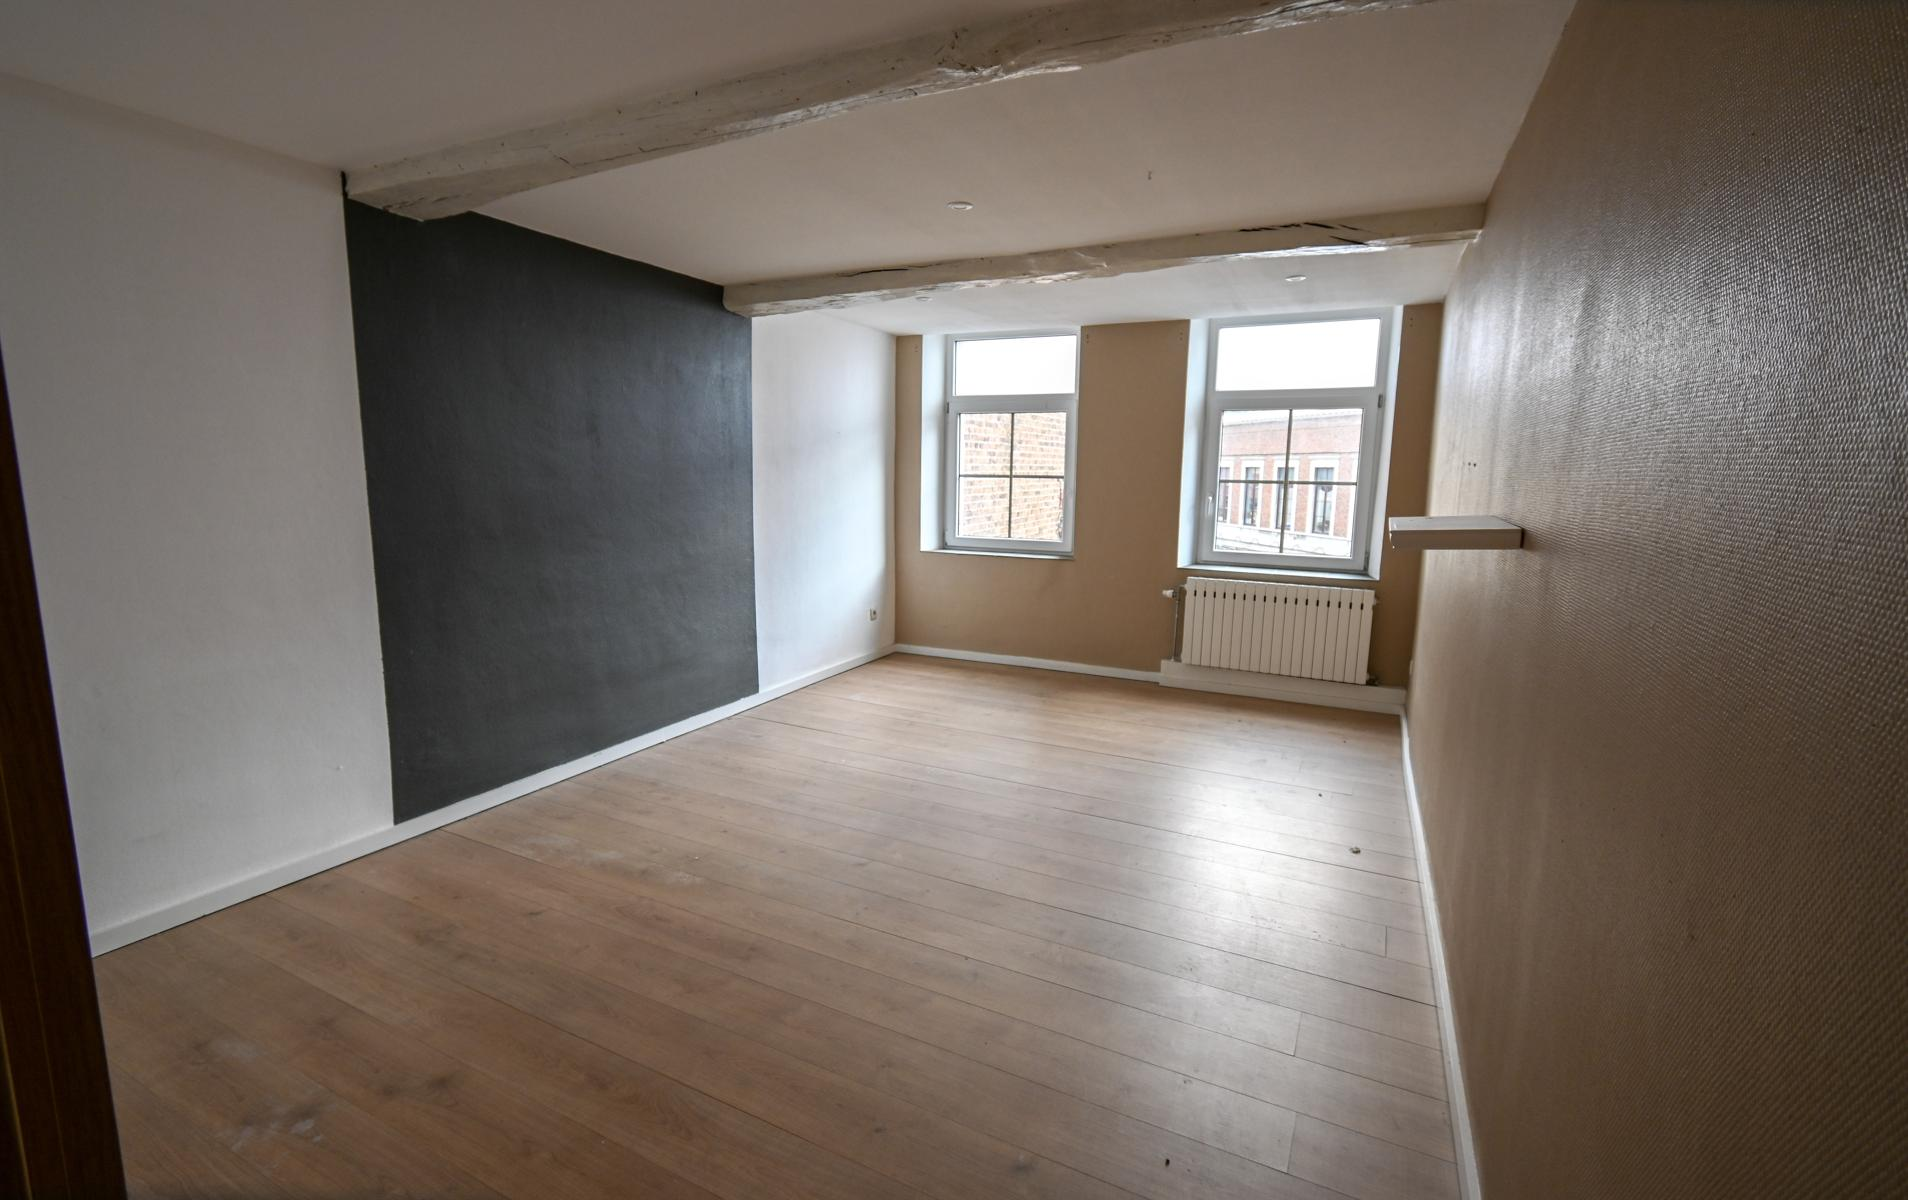 Appartement - Dison - #4529434-11